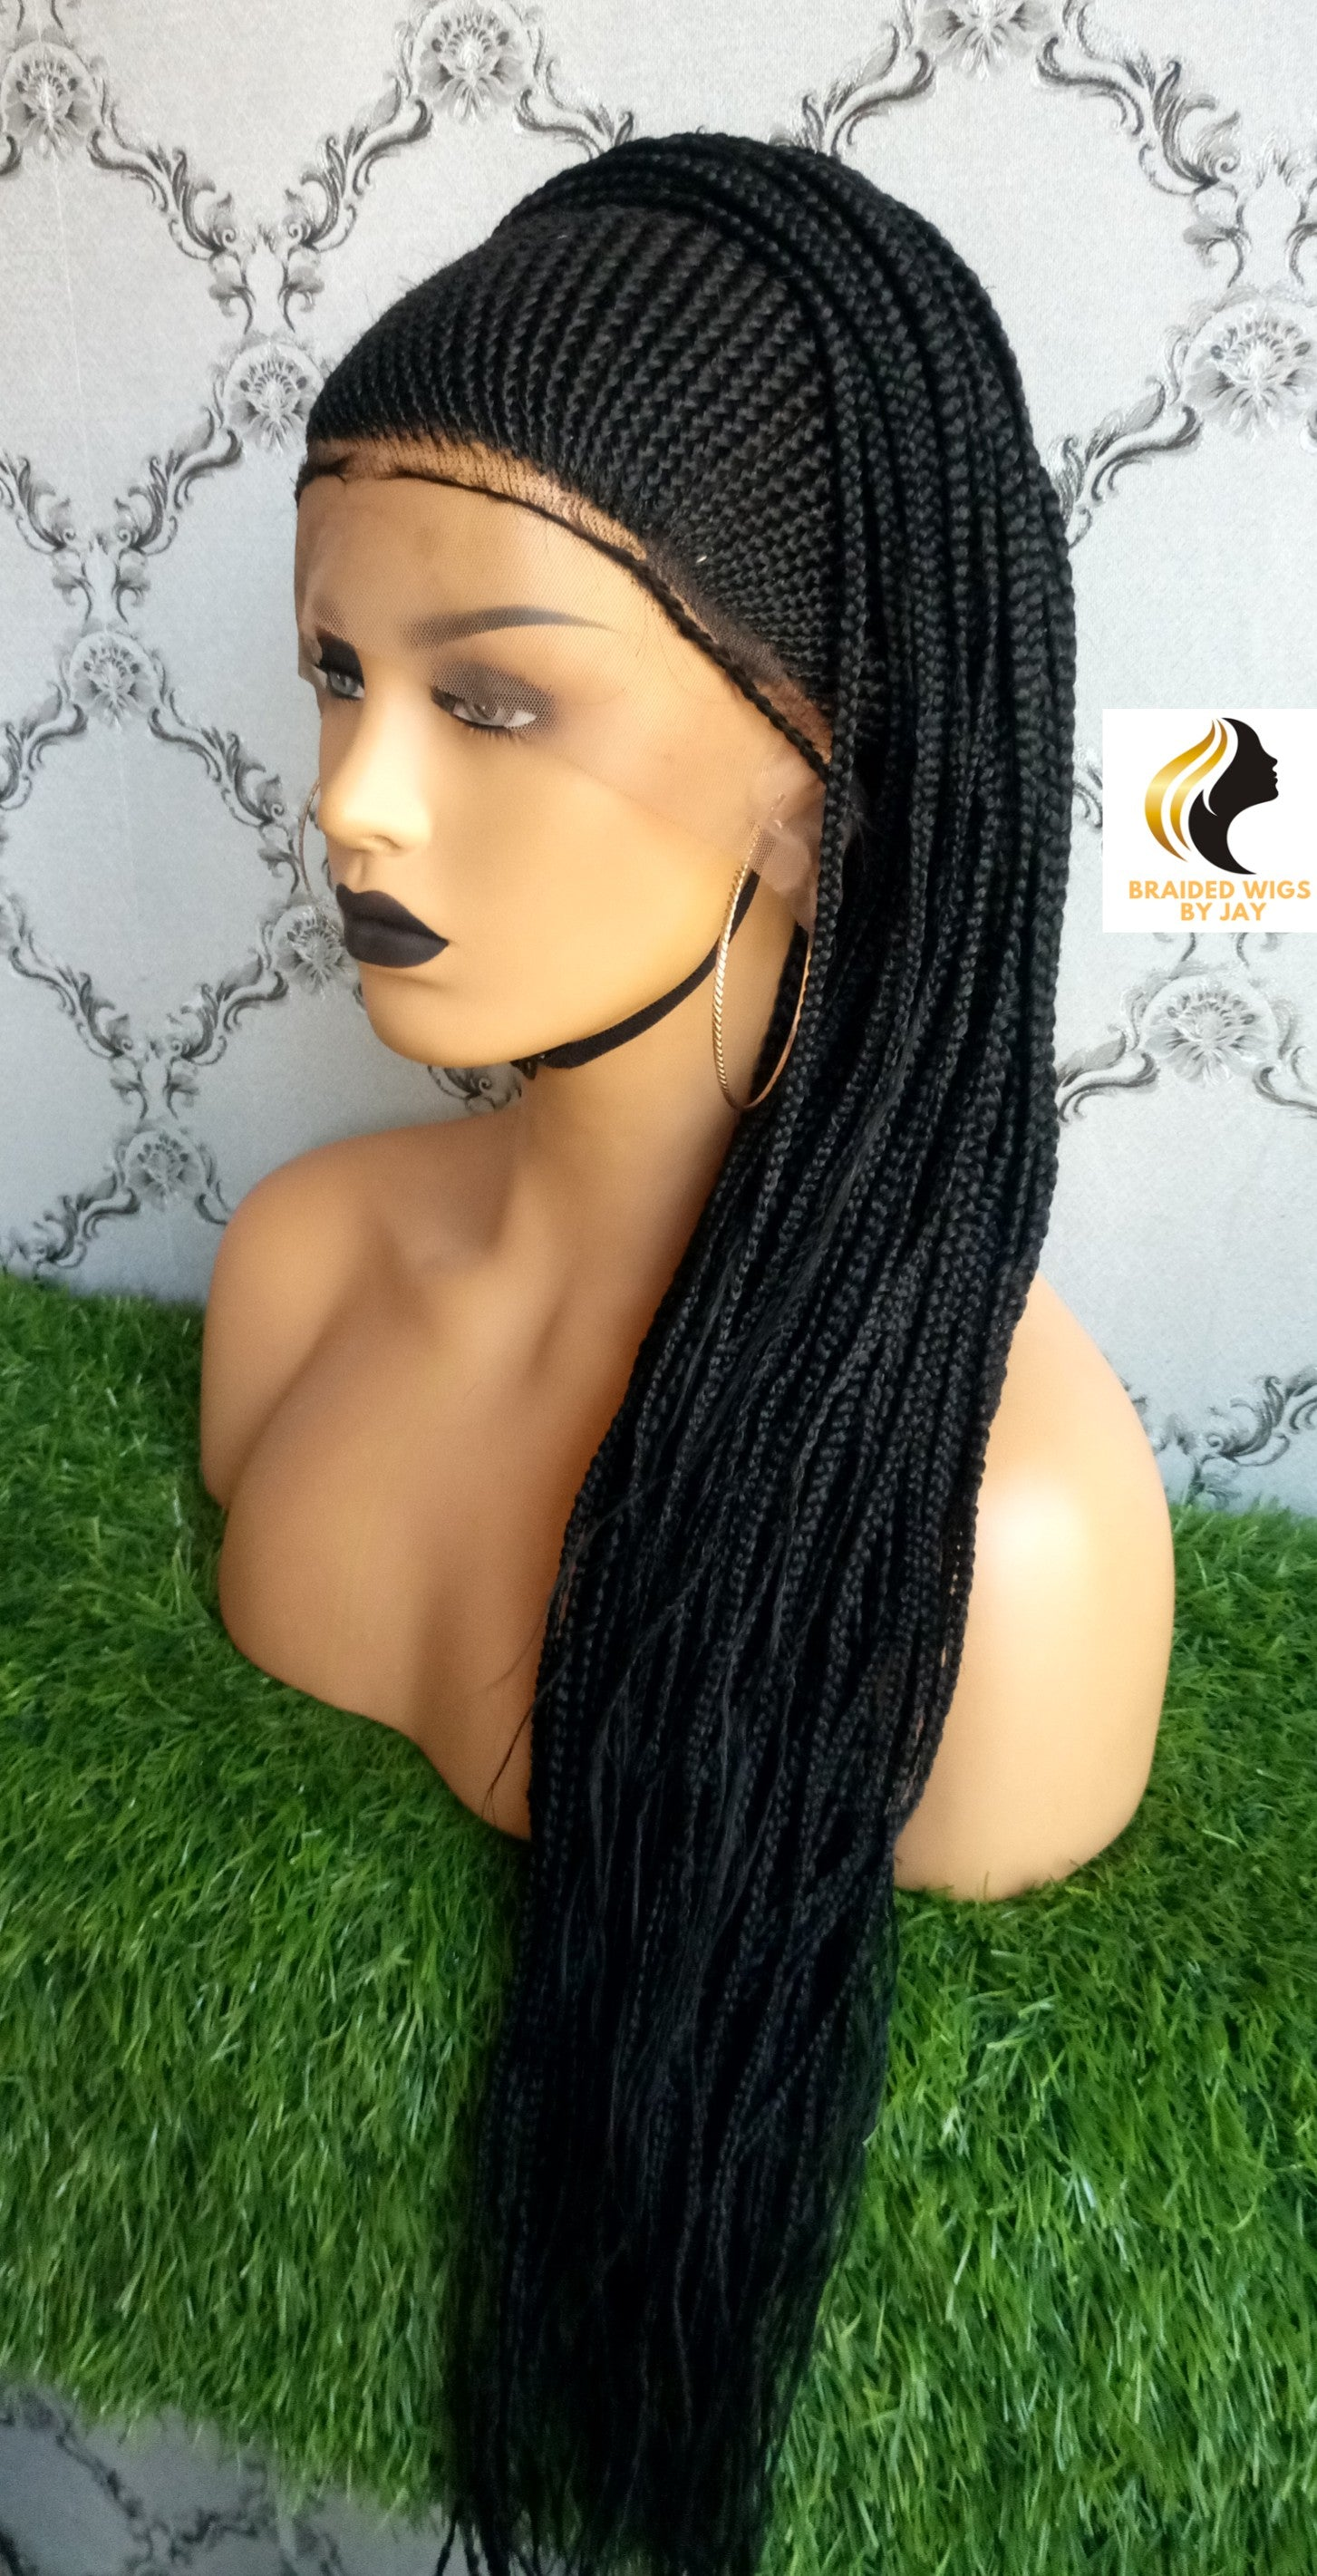 Hauwa Braids Wig - Braided Wigs by Jay